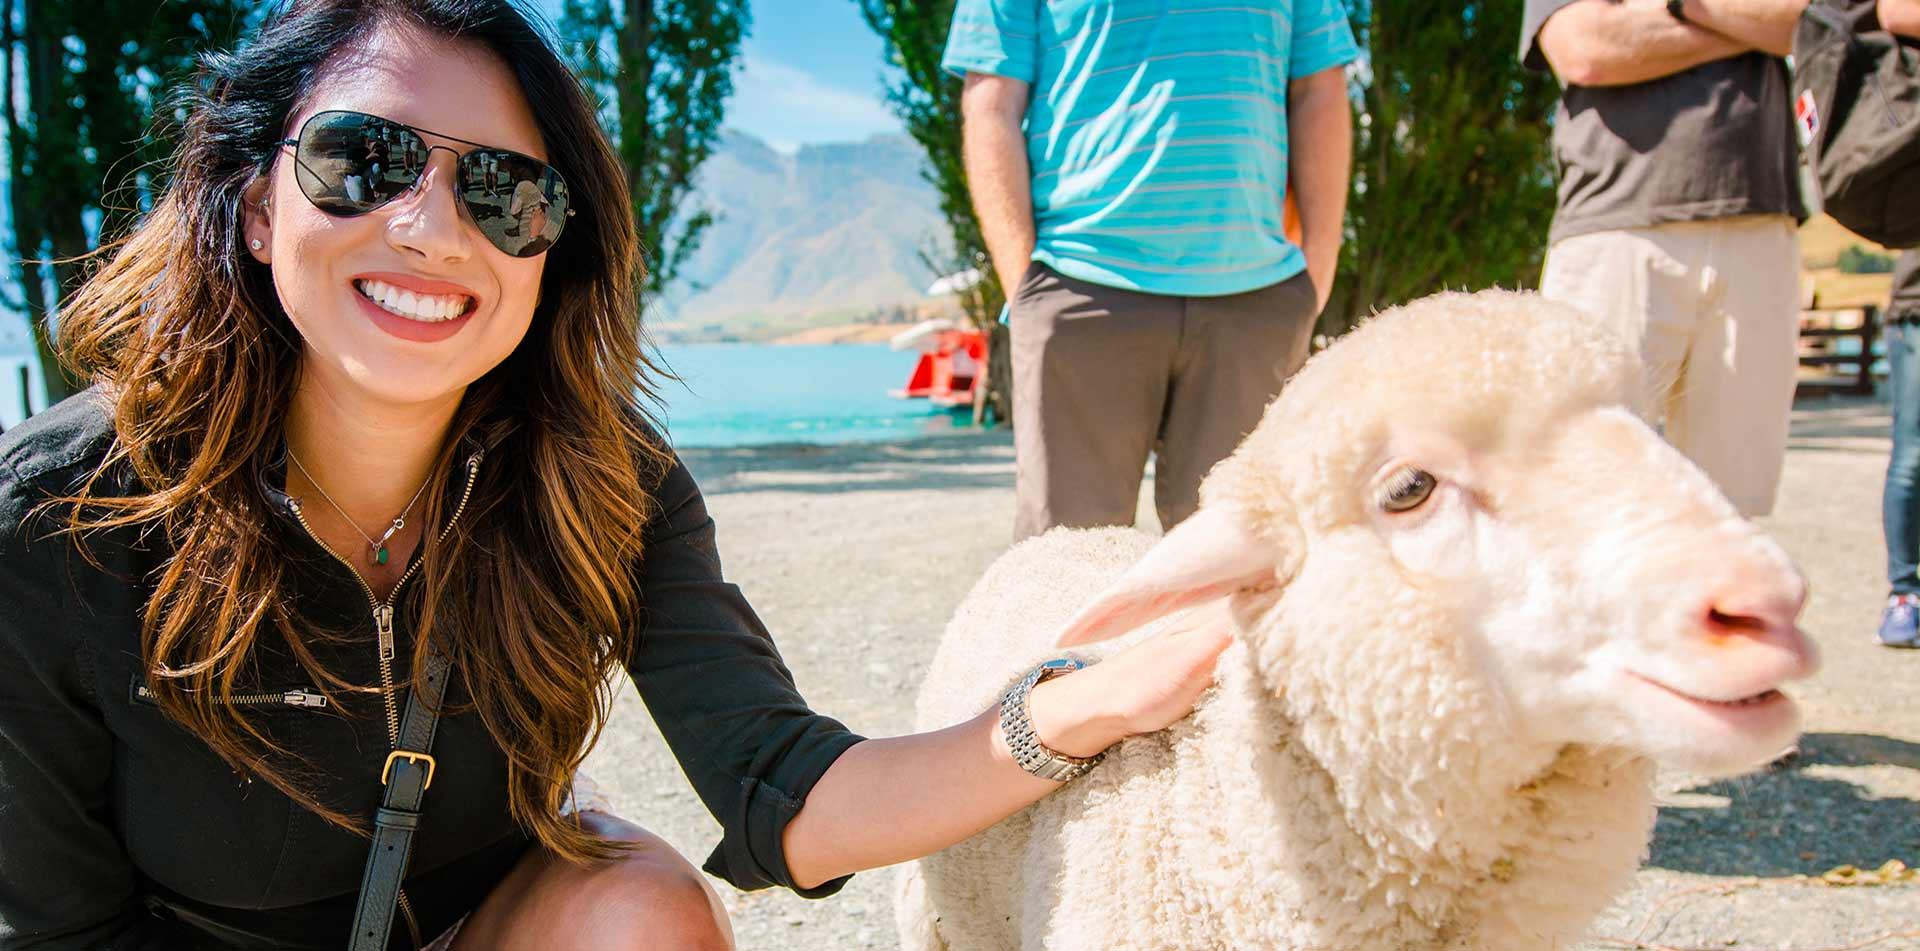 Oceania New Zealand Queenstown woman petting sheep at Mt. Nicholas Farm - luxury vacation destinations